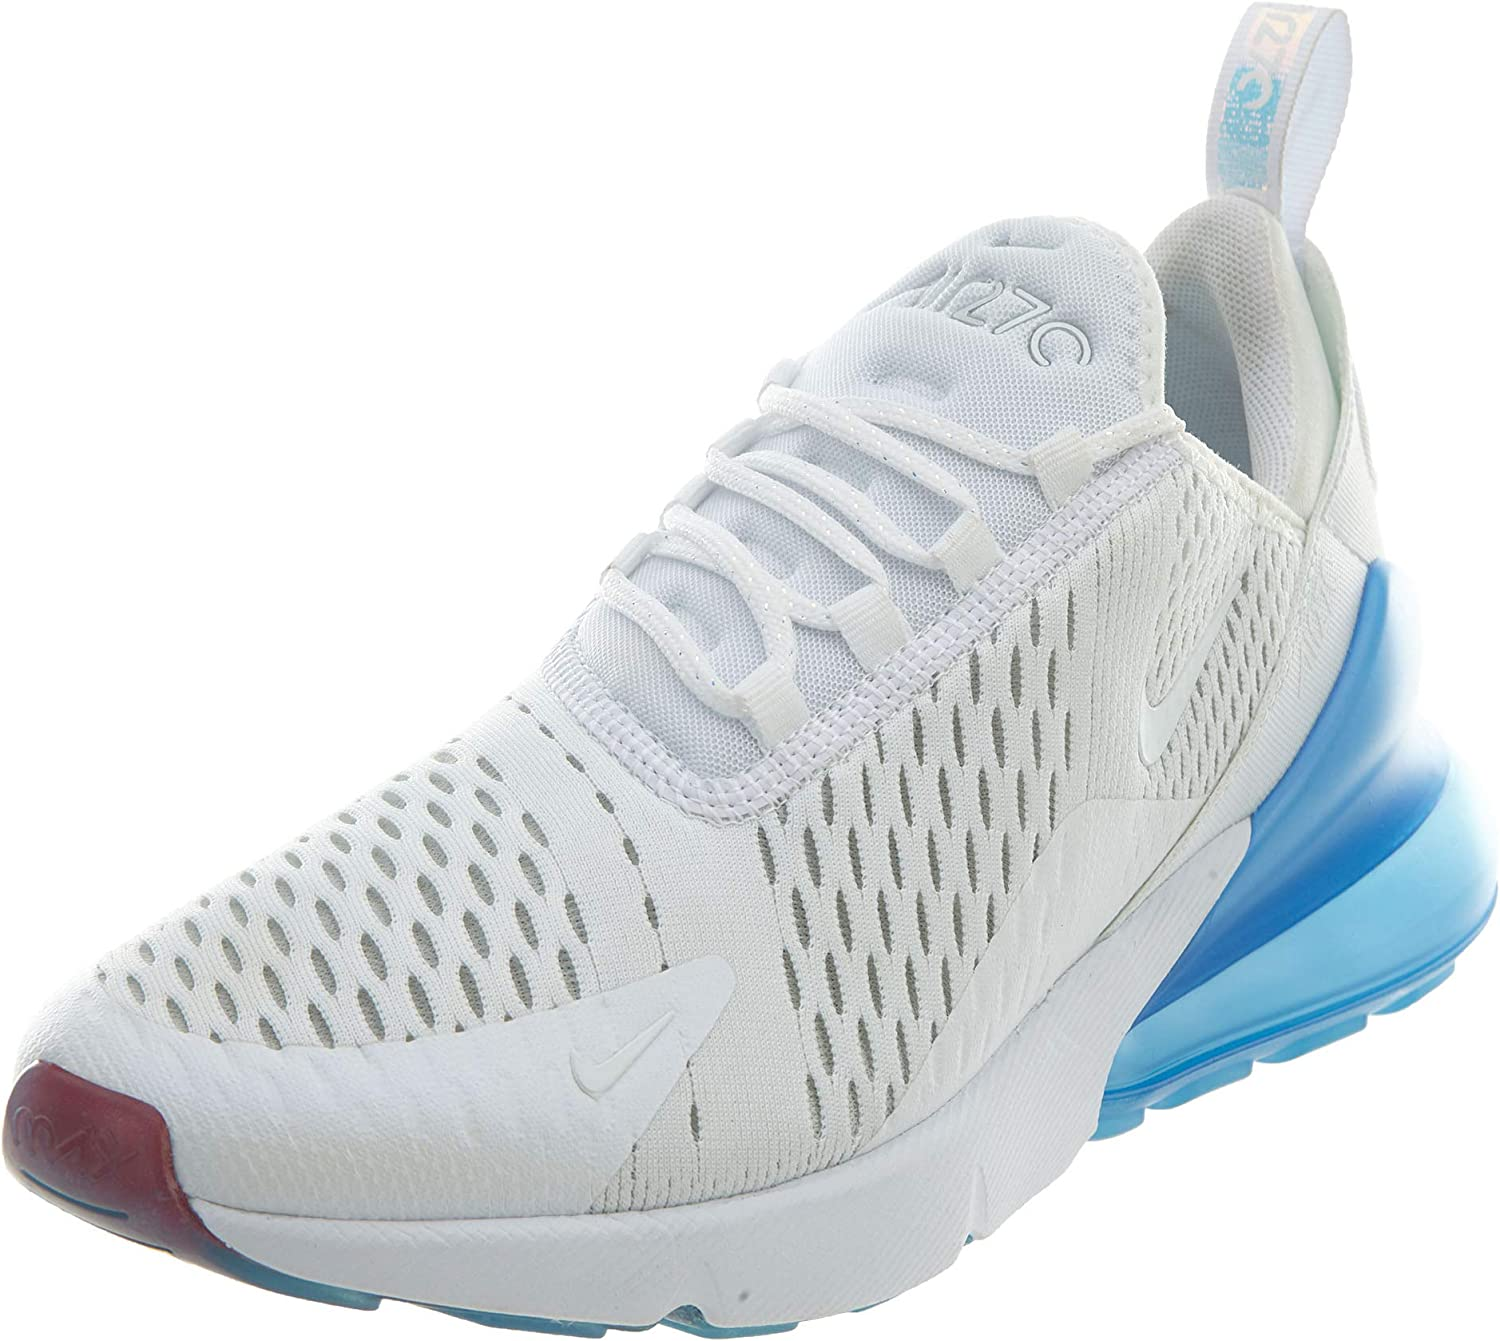 Nike AIR MAX 270 - AQ7982-100 White, Metallic Silver